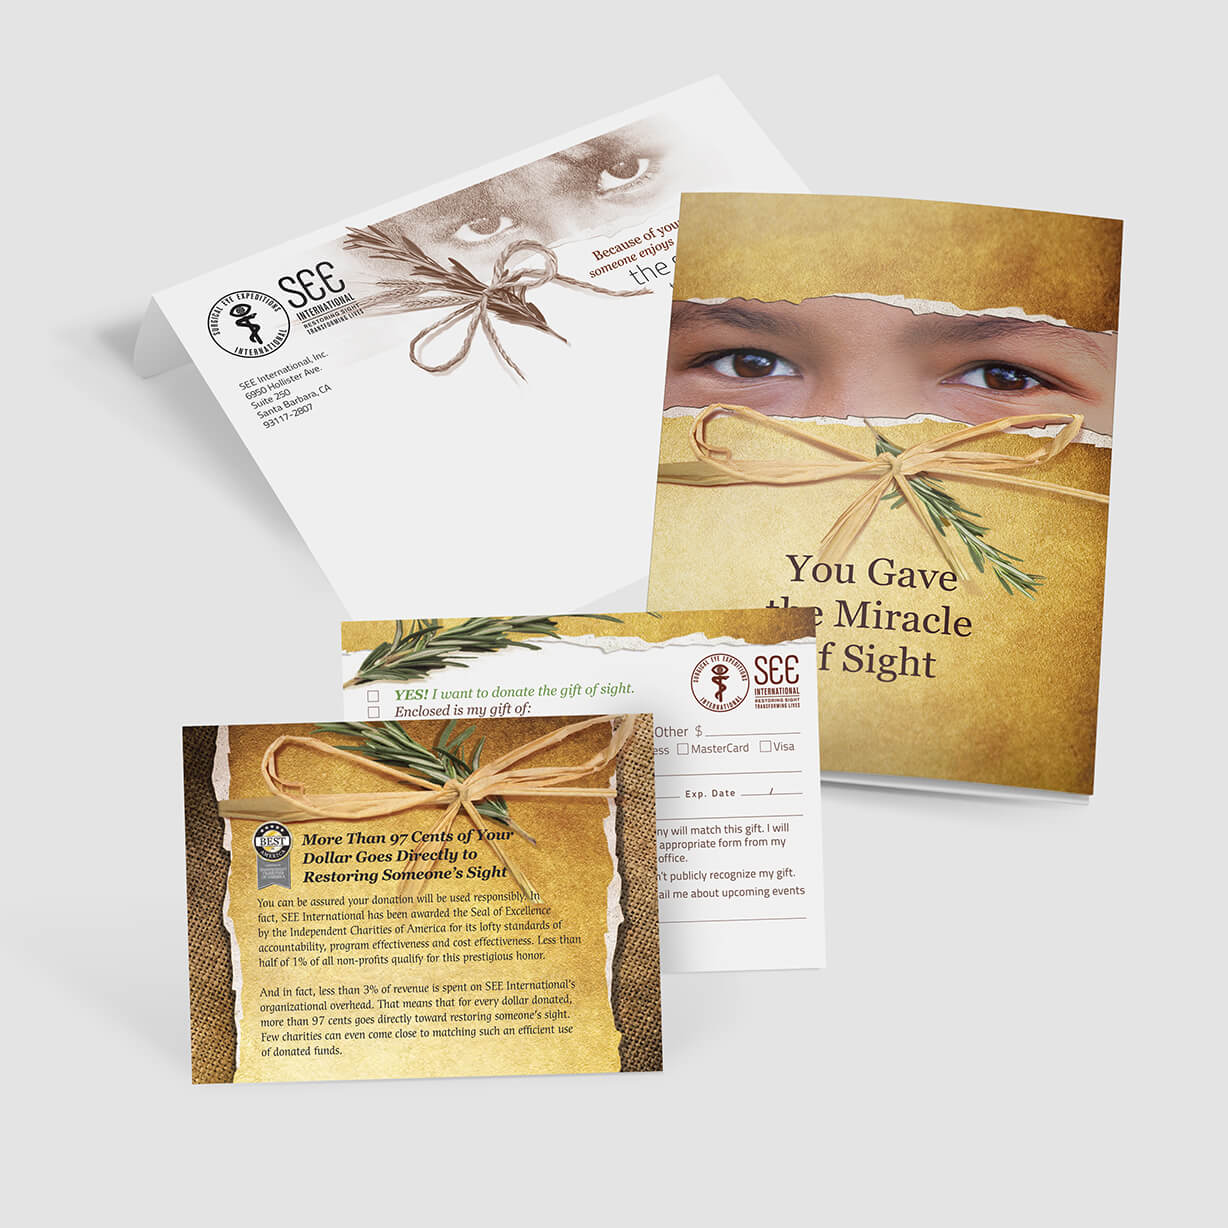 Mailer soliciting donations for international vision organization